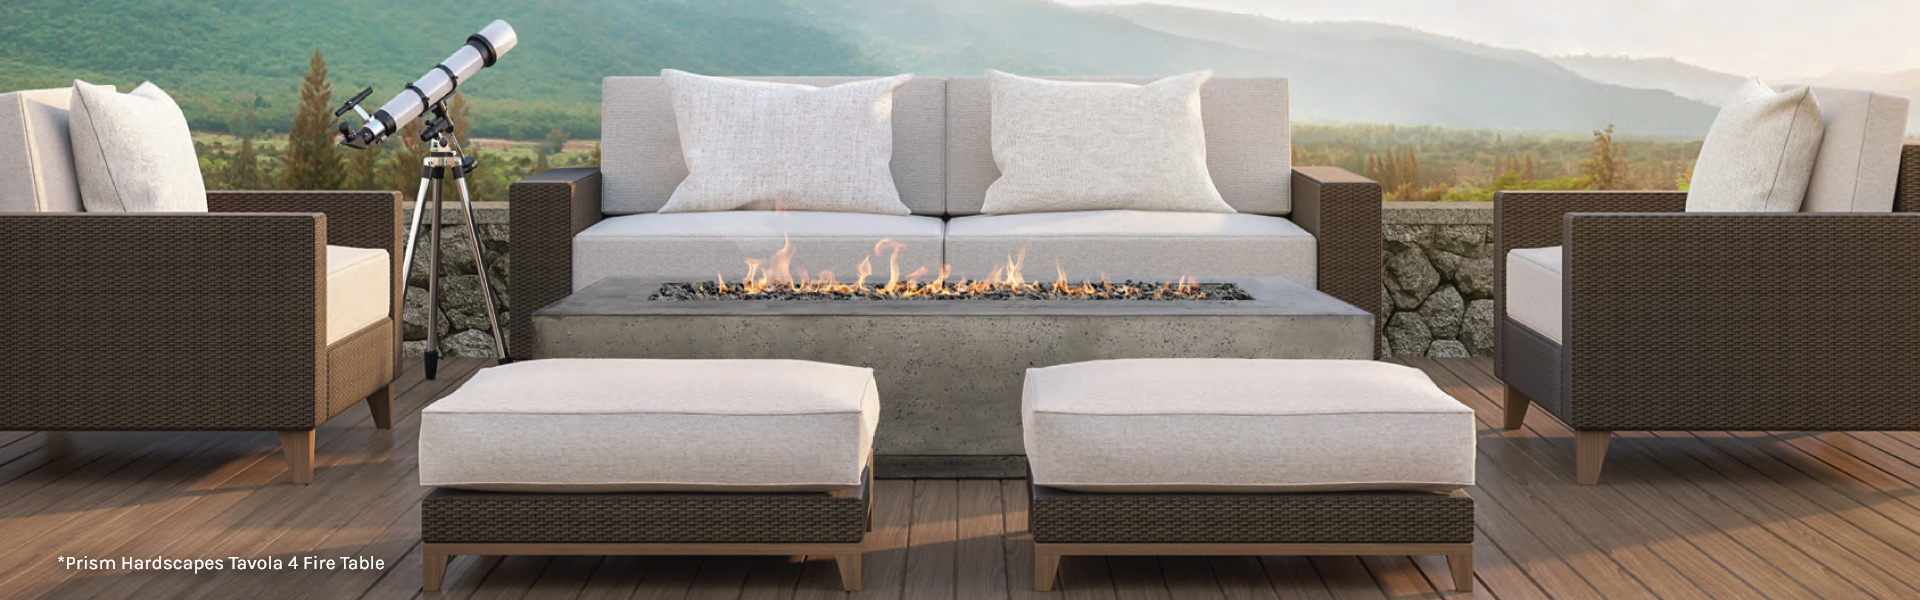 Prism Hardscapes Tavola 4 Fire Table